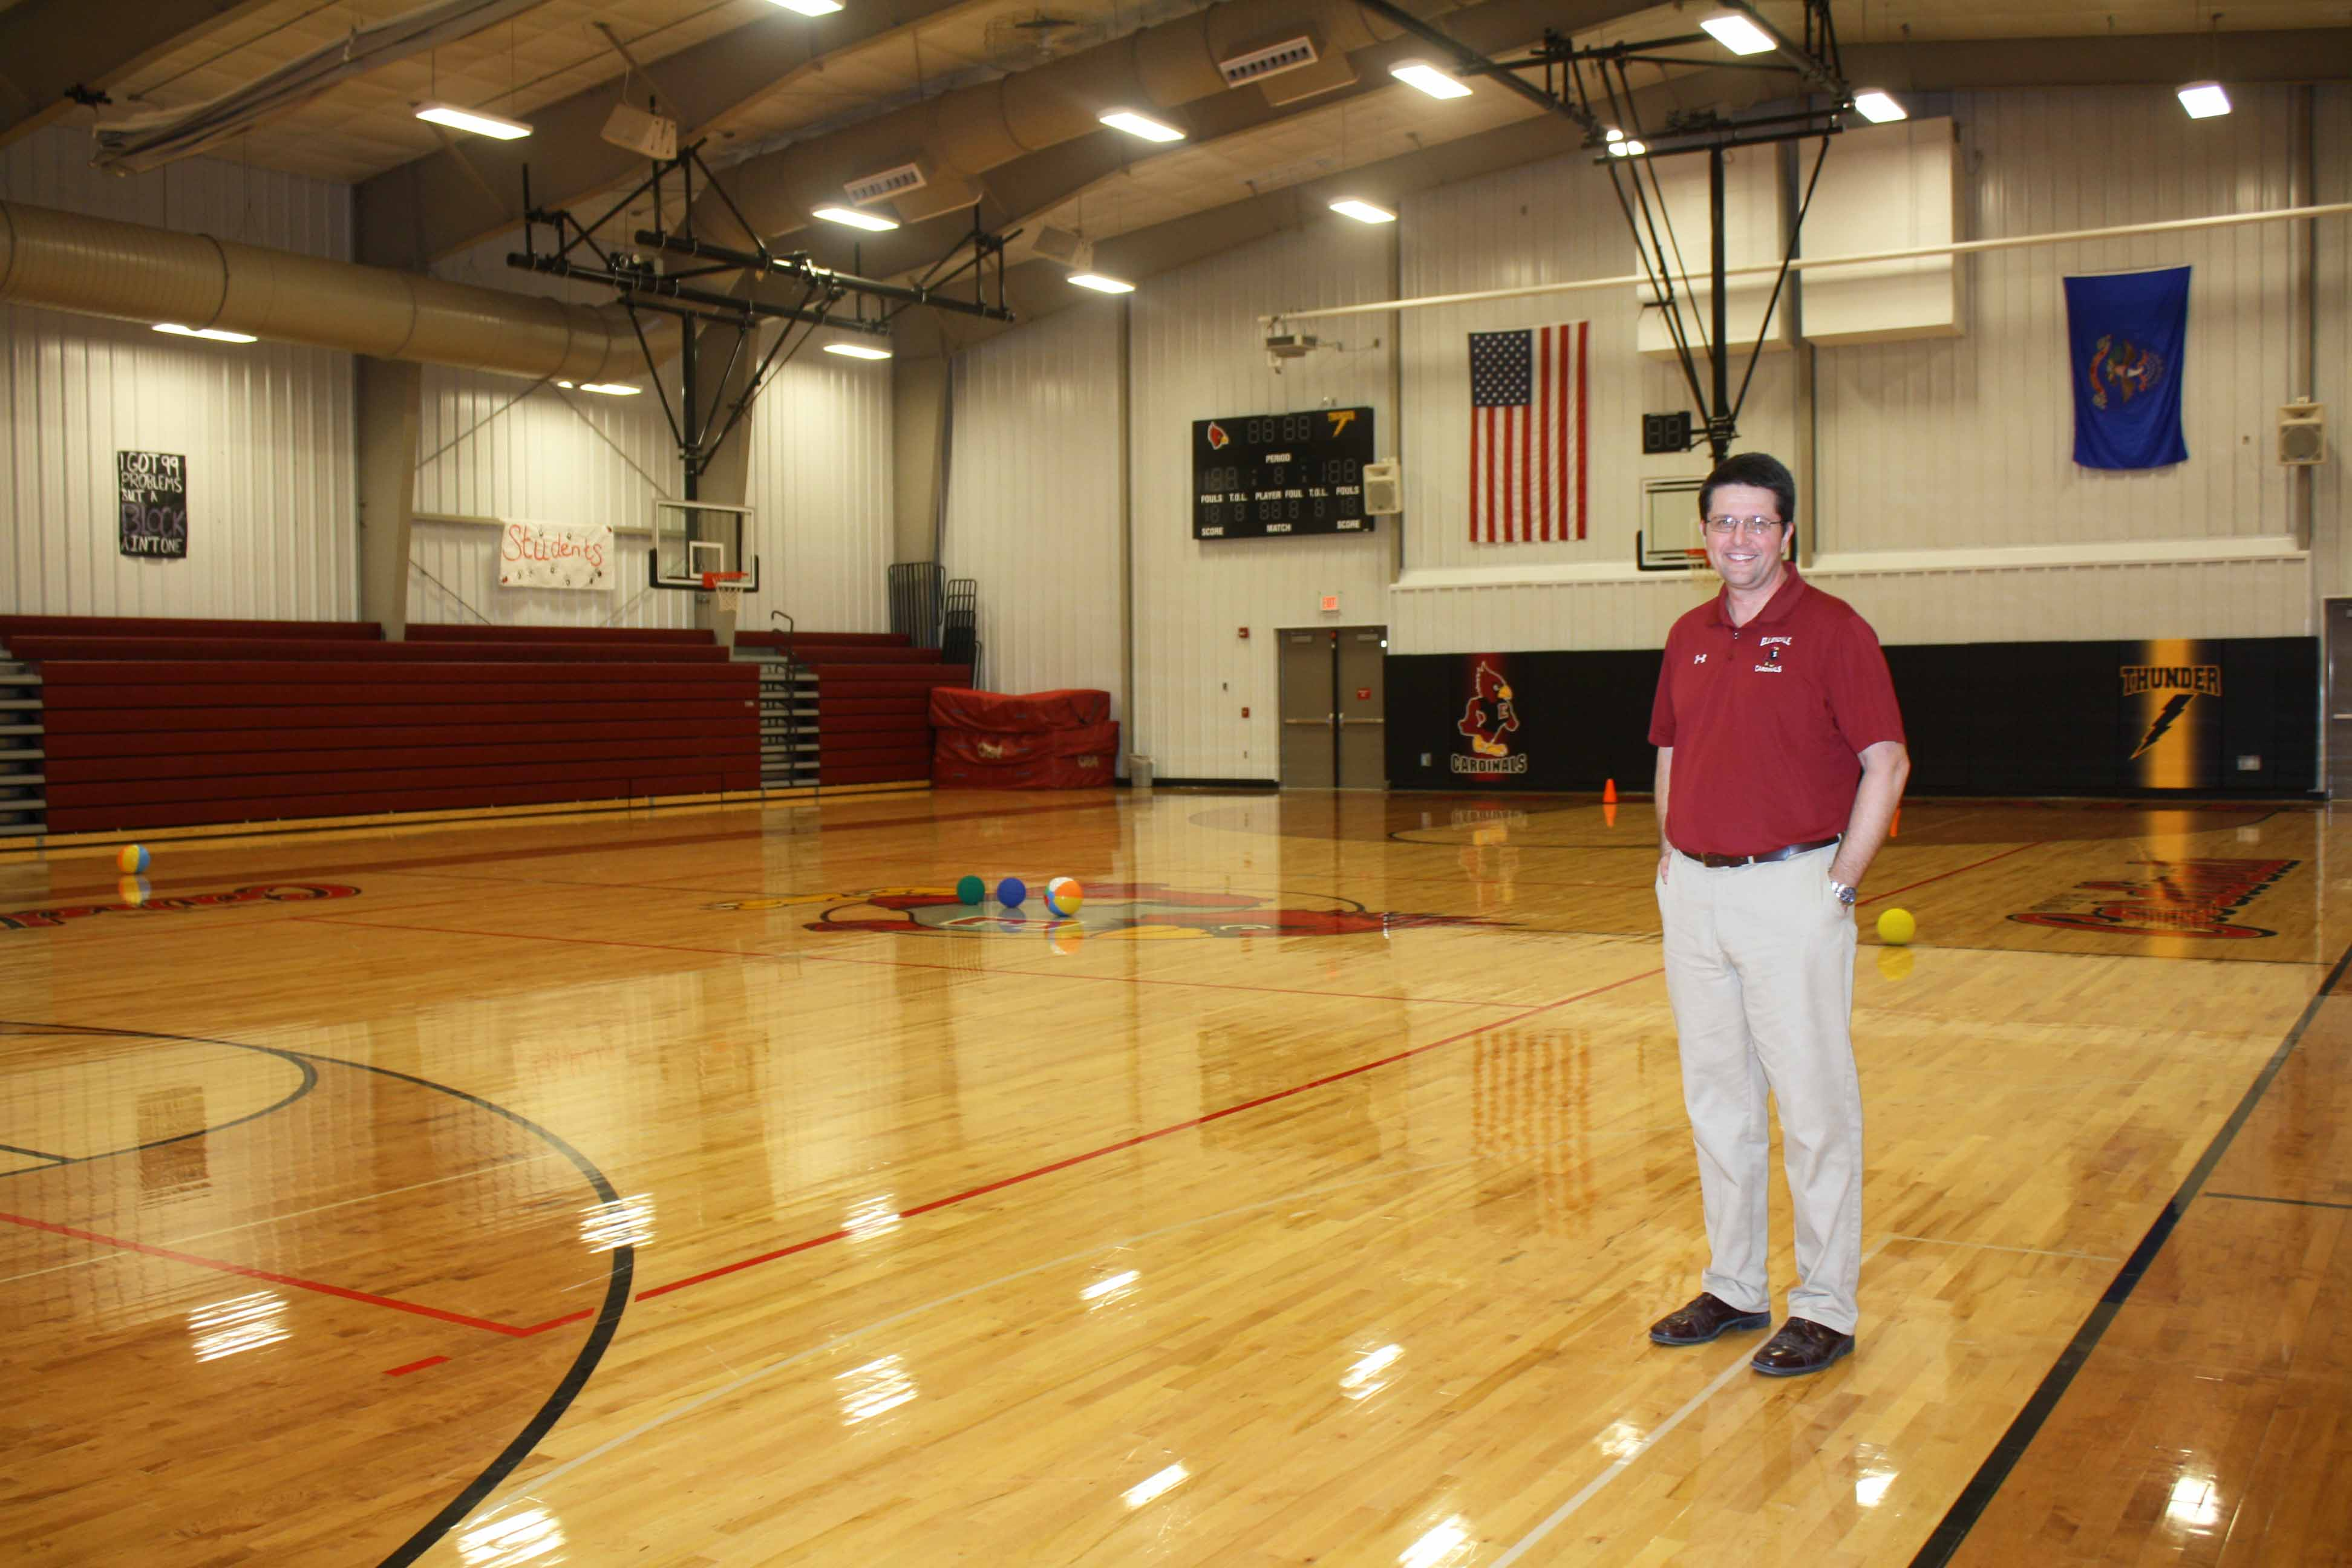 Ellendale Public Schools Superintendent Jeff Fastnacht stands in the gym, which was constructed alongside a complete elementary school remodel in 2012. The high school was built in 1997, and a new track was built last year.